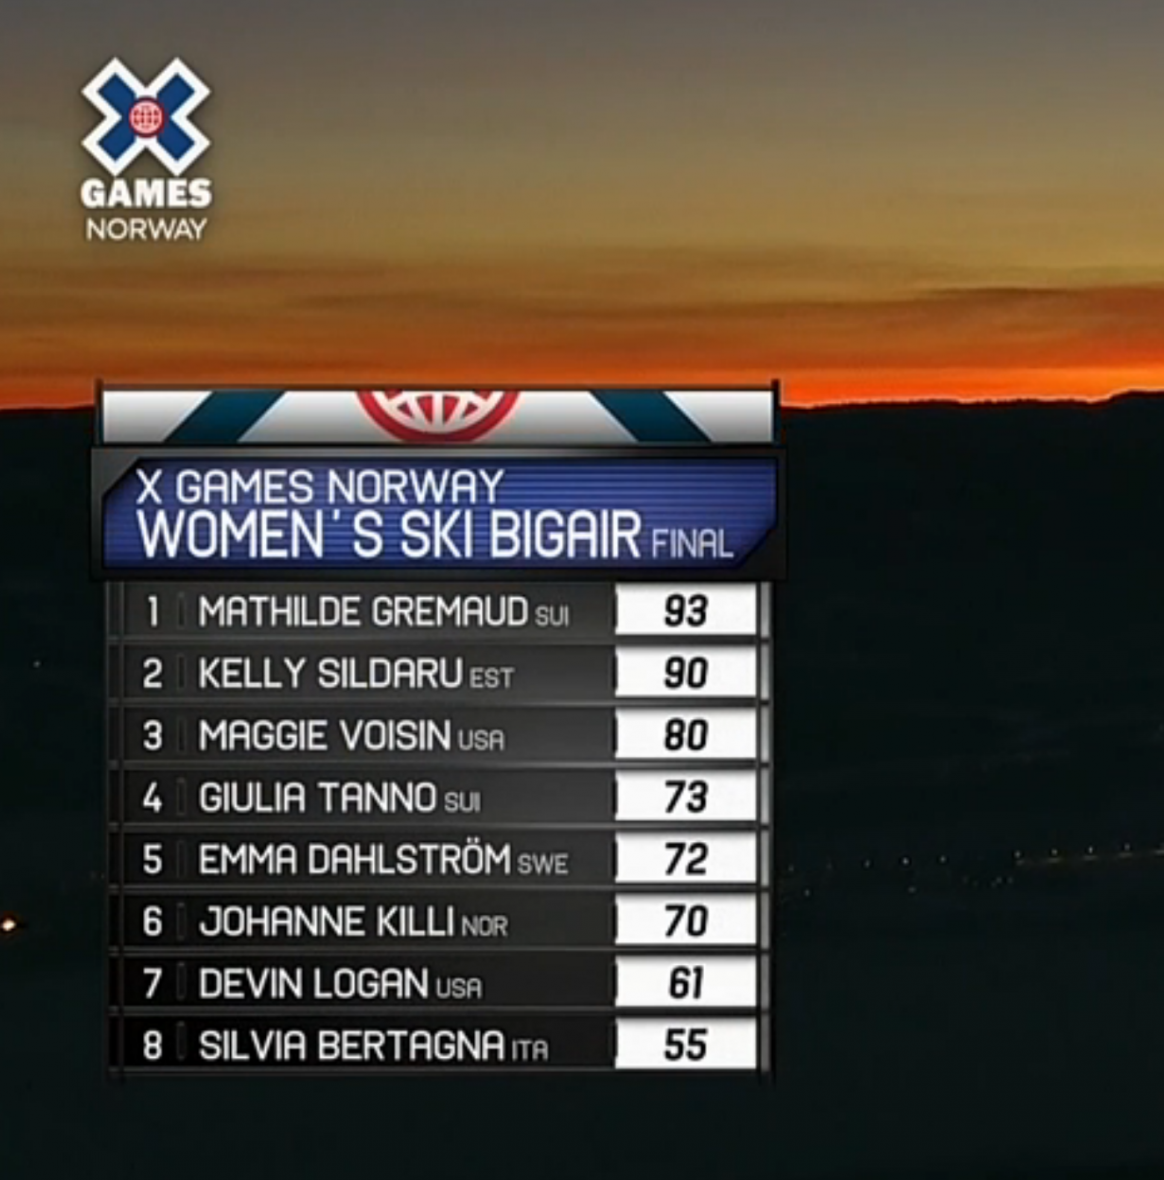 X Games Norway Woman ski big air final results